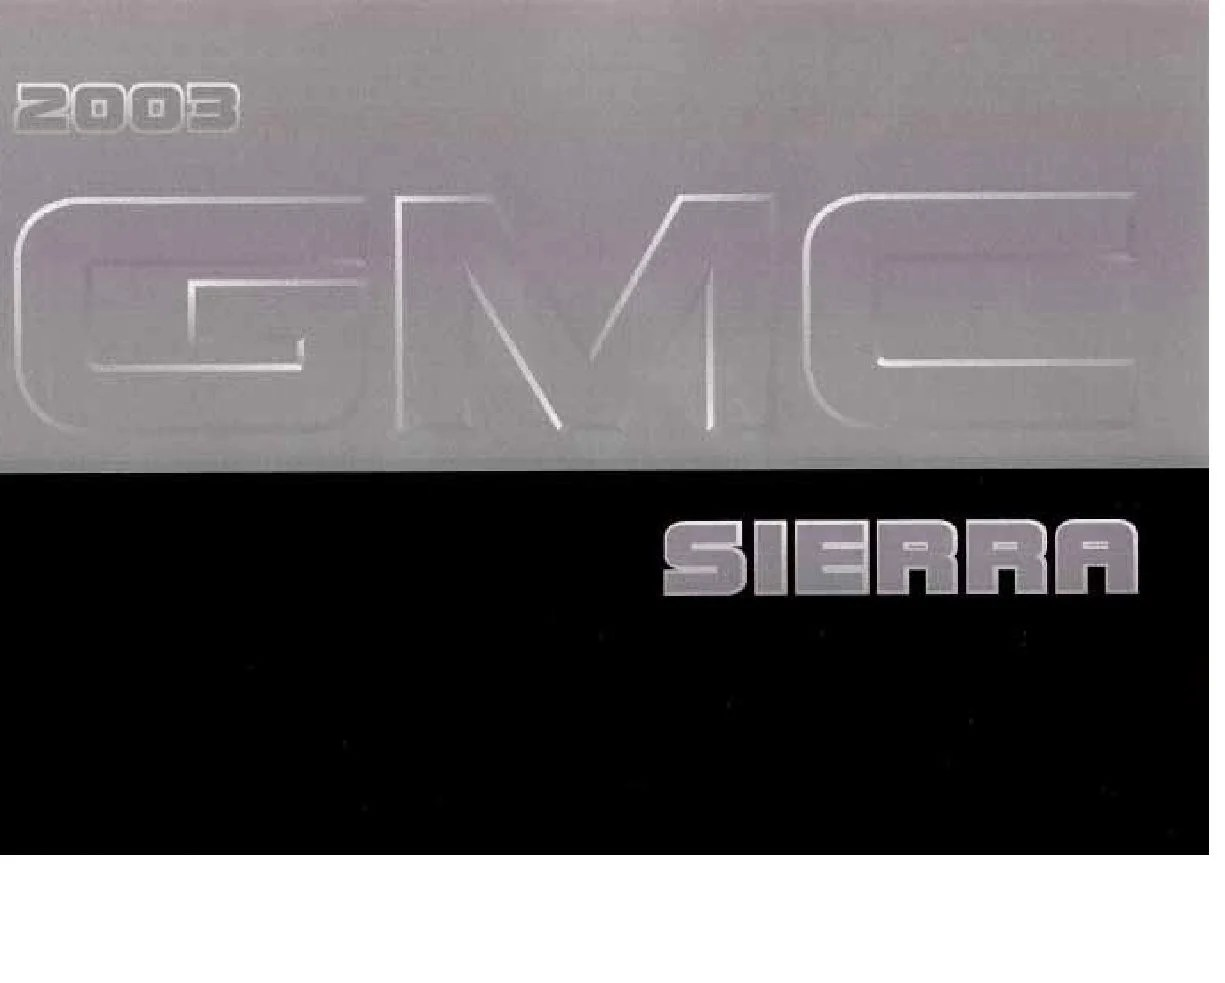 hight resolution of 2003 gmc sierra owner s manual